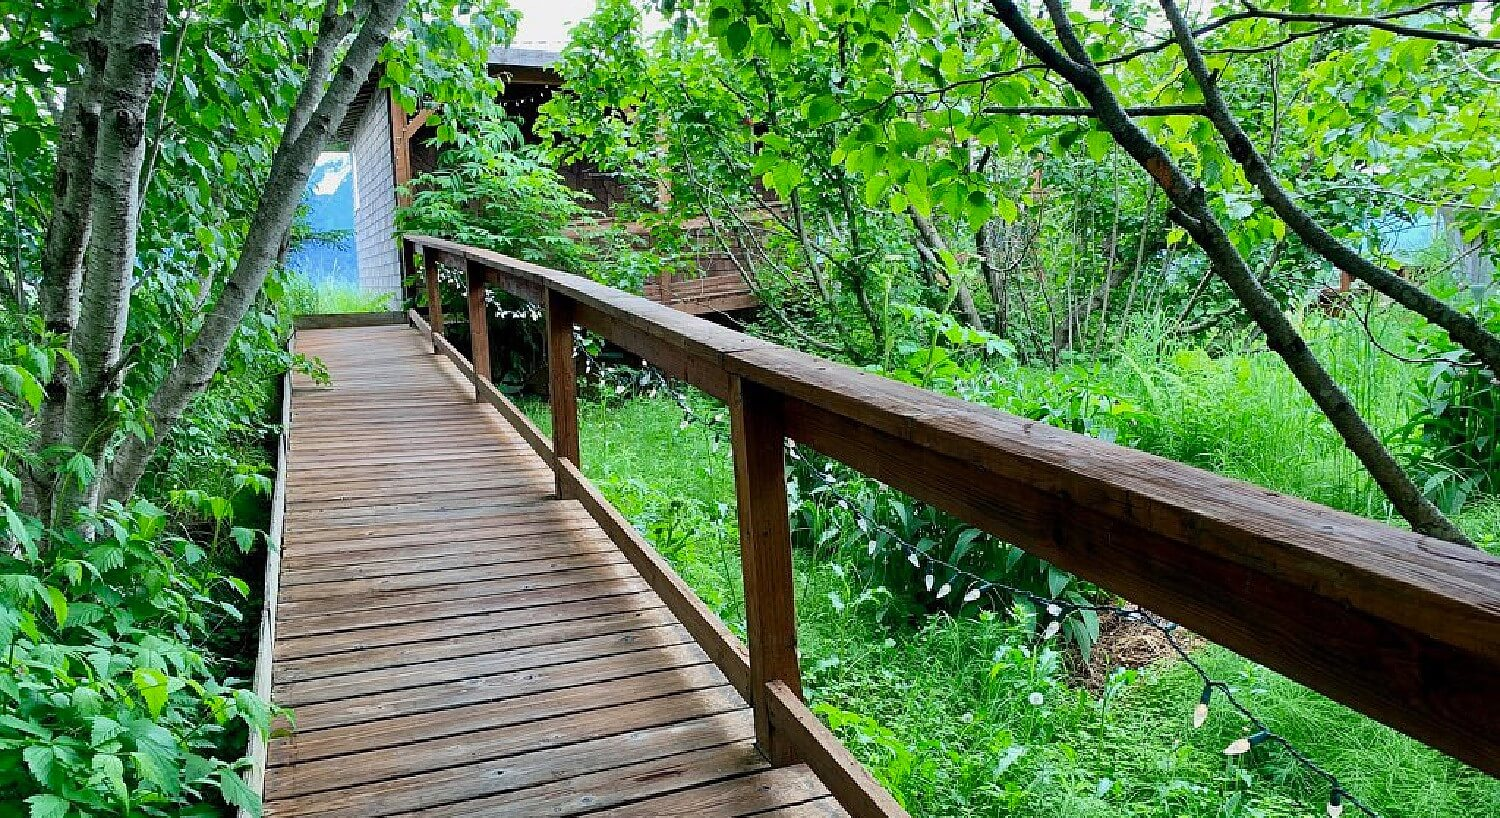 Wooden walkway with railing surrounded by trees leading up to a cabin